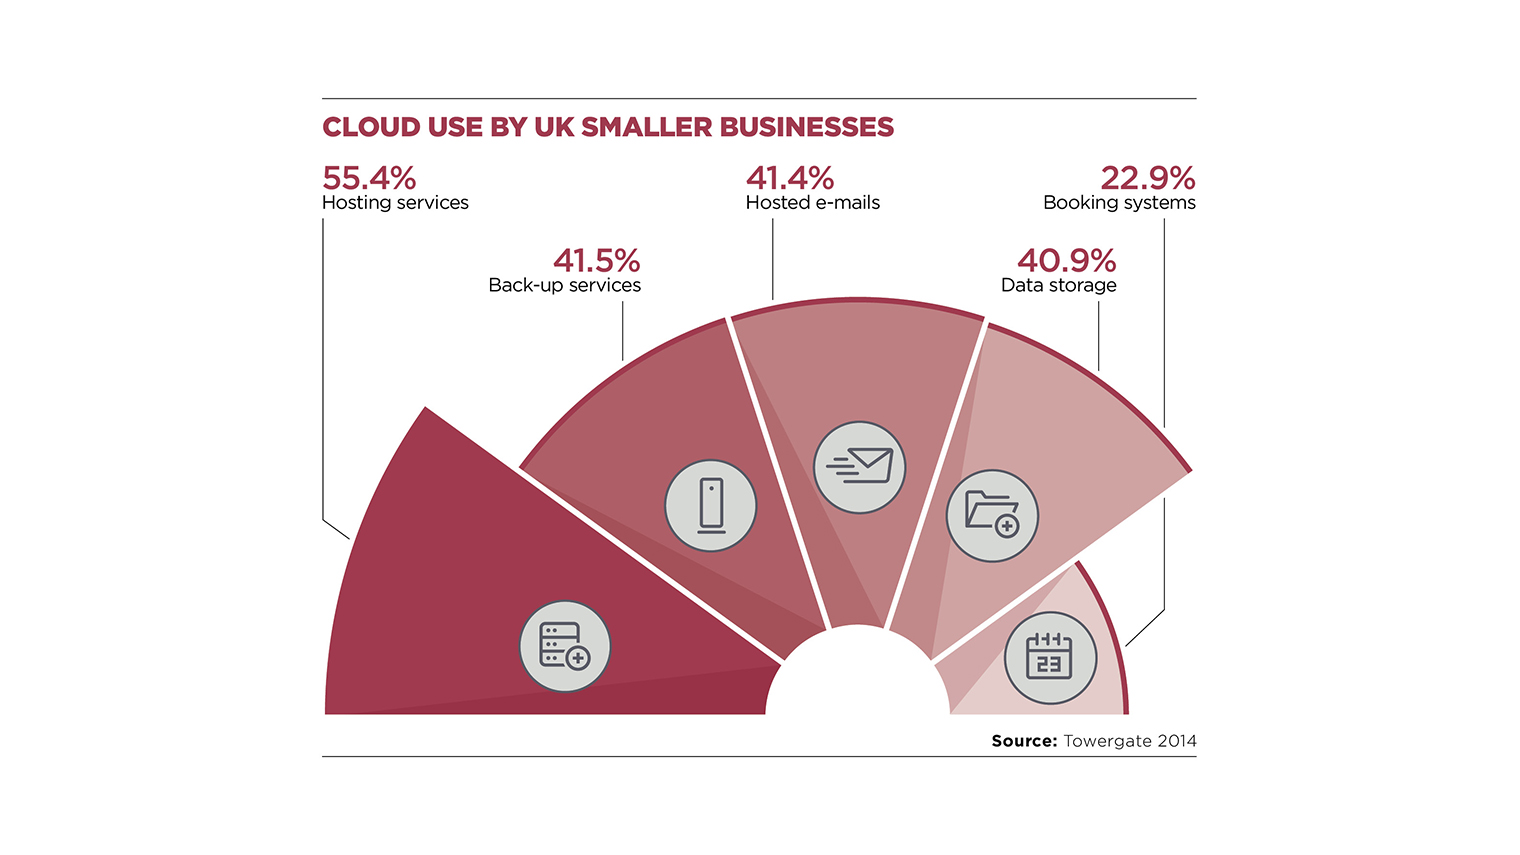 Cloud use by smaller businesses